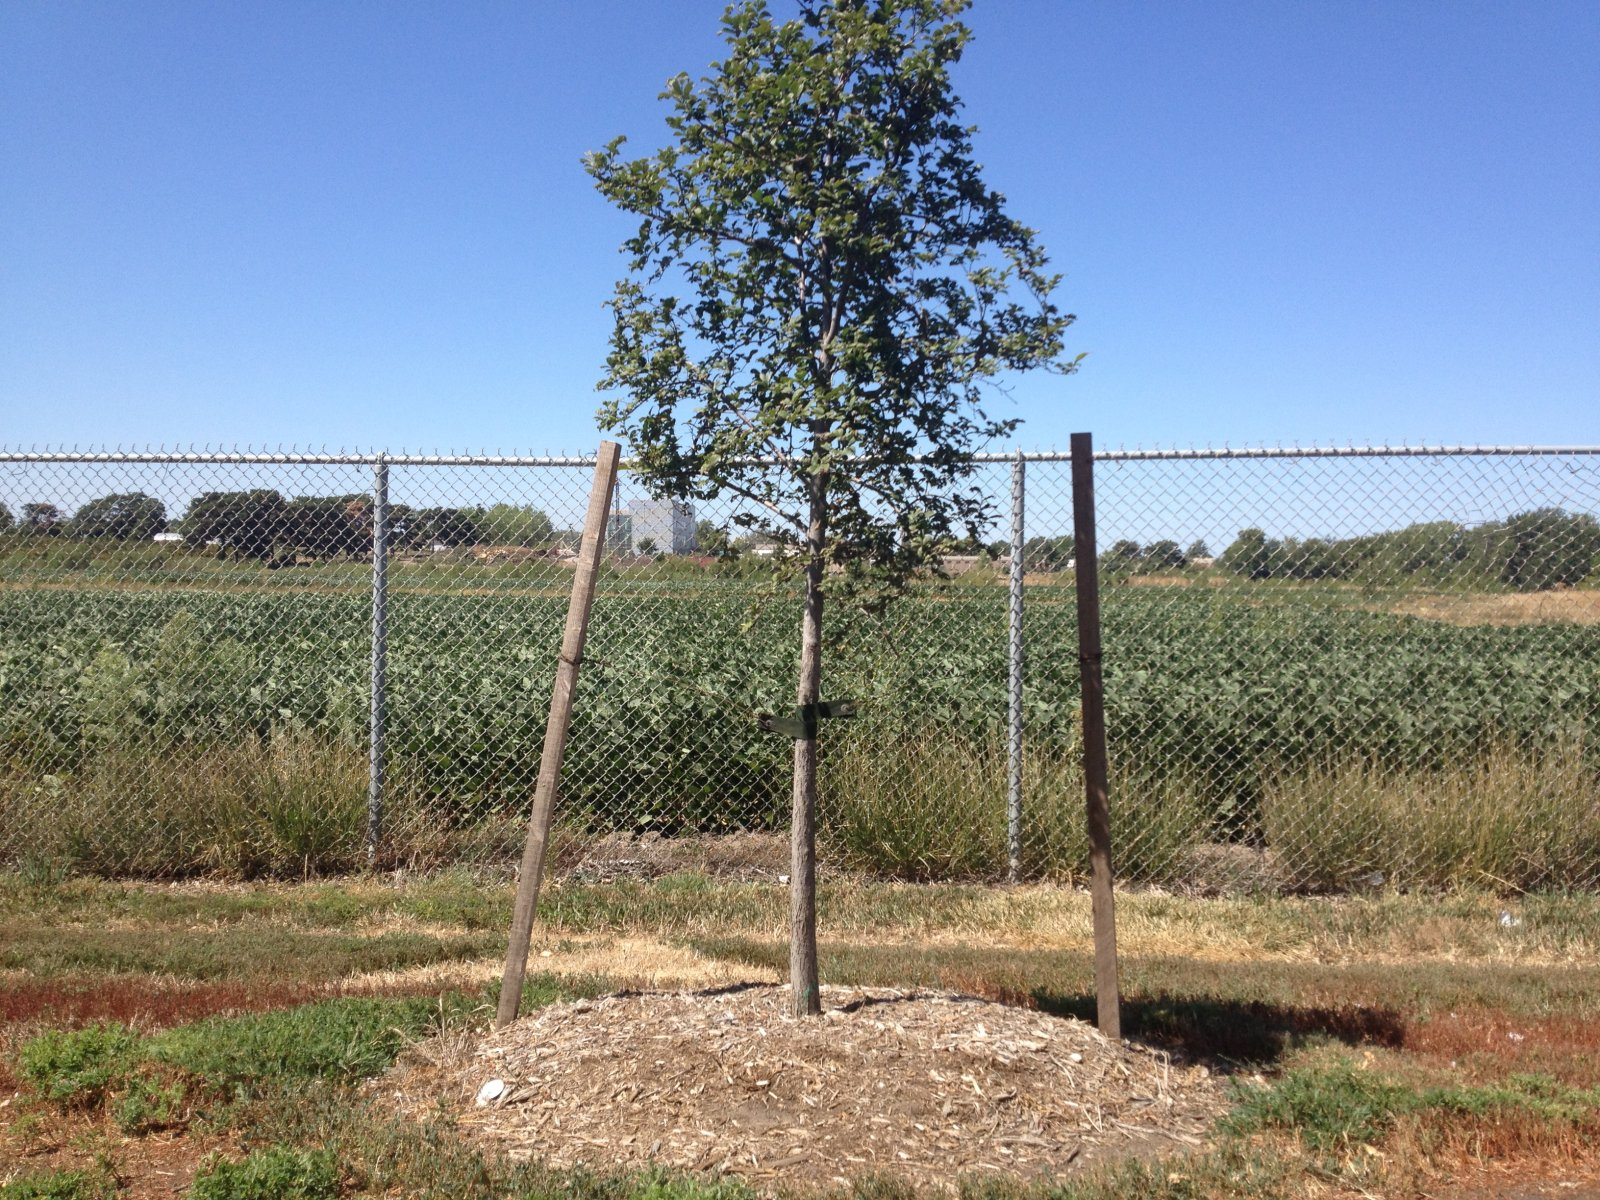 Newly planted tree with support staking.